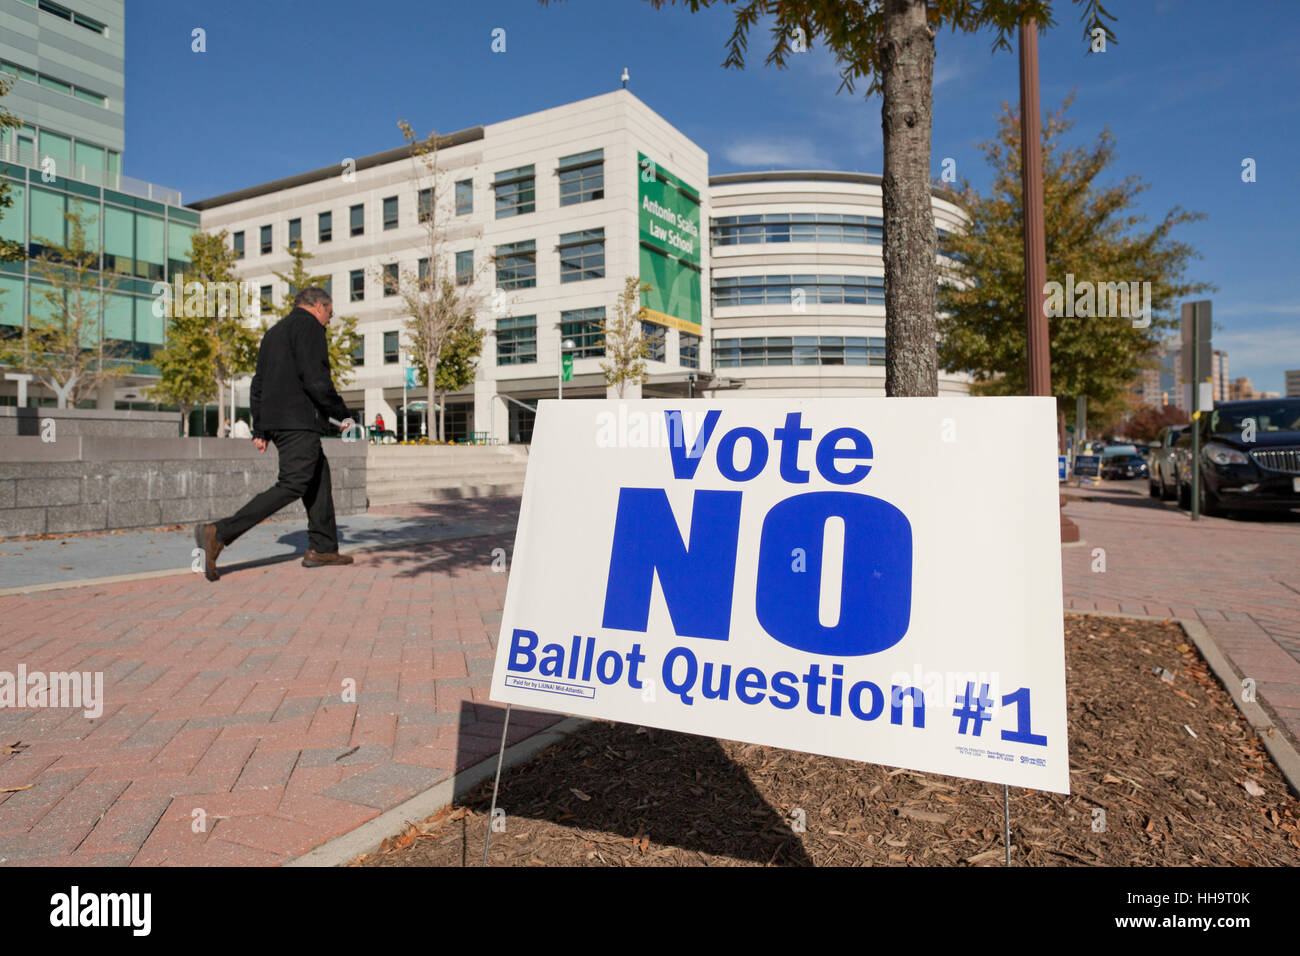 Local municipality voting ad outside of polling place - Arlington, Virginia USA - Stock Image